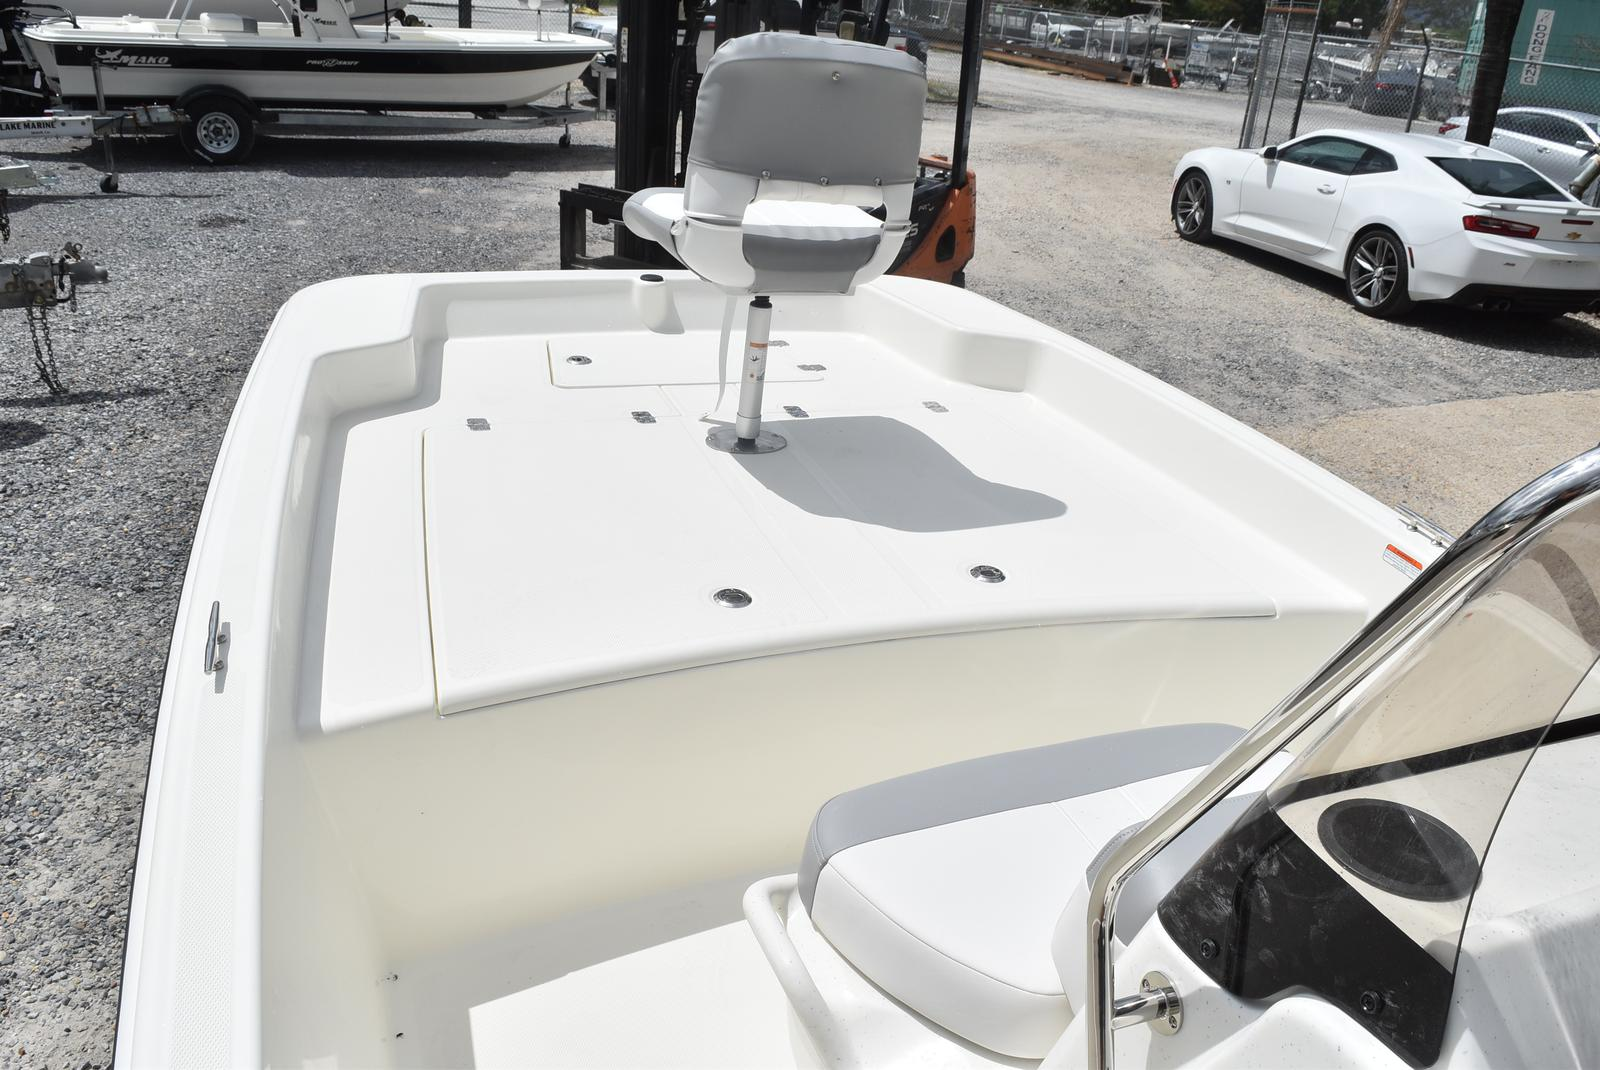 2020 Mako boat for sale, model of the boat is Pro Skiff 17, 75 ELPT & Image # 434 of 702